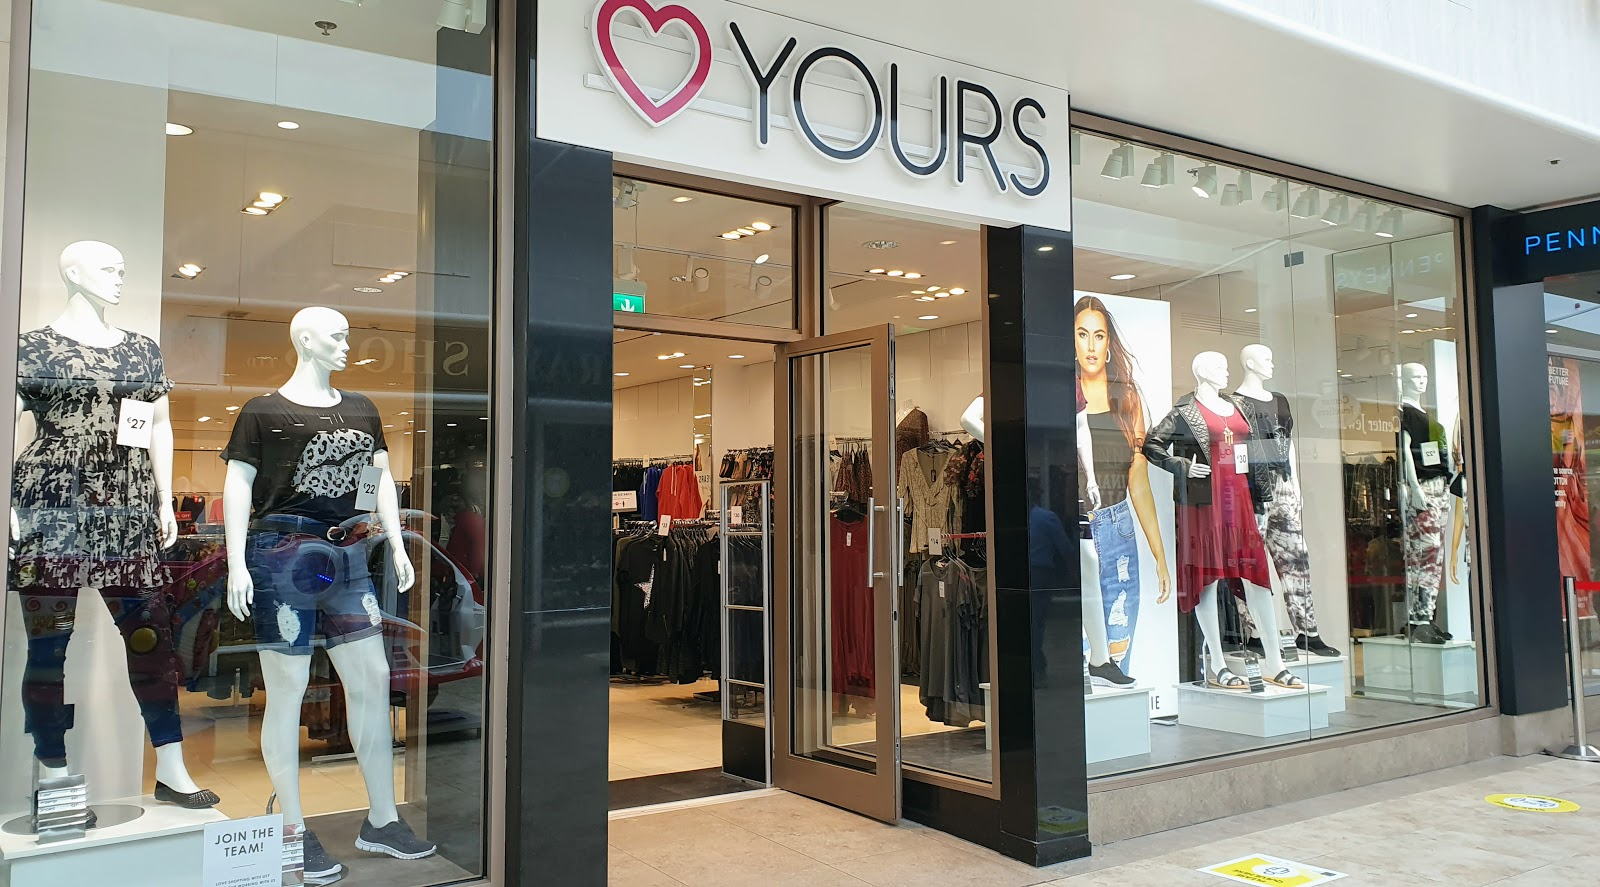 Shop window of Yours large-size super-size large ladies fashion clothing shop in Galway Shopping Centre